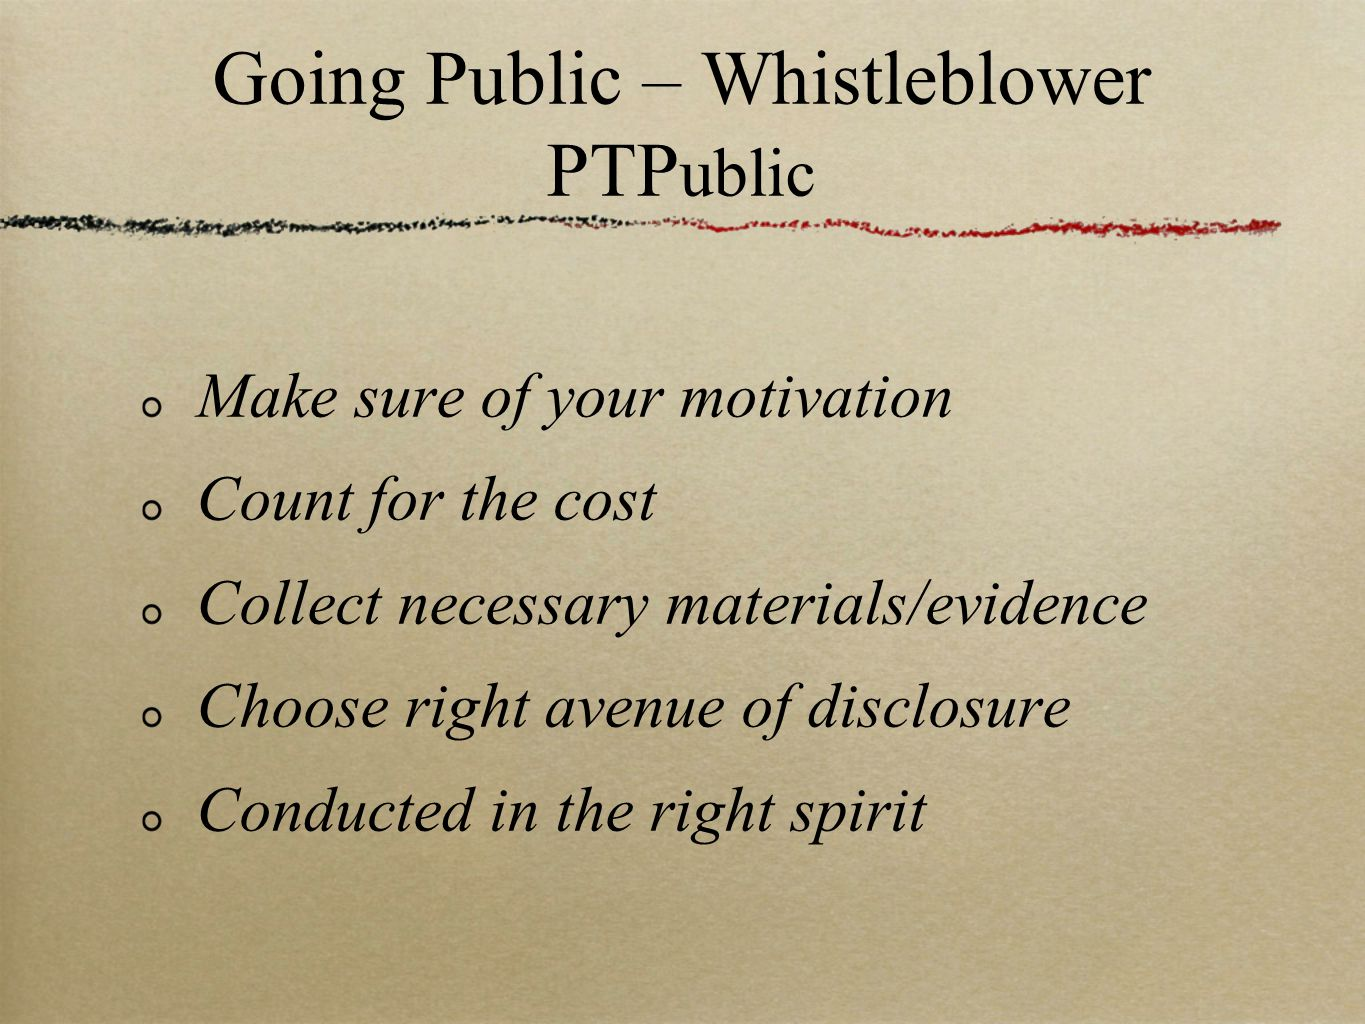 Going Public – Whistleblower PTP ublic Make sure of your motivation Count for the cost Collect necessary materials/evidence Choose right avenue of disclosure Conducted in the right spirit